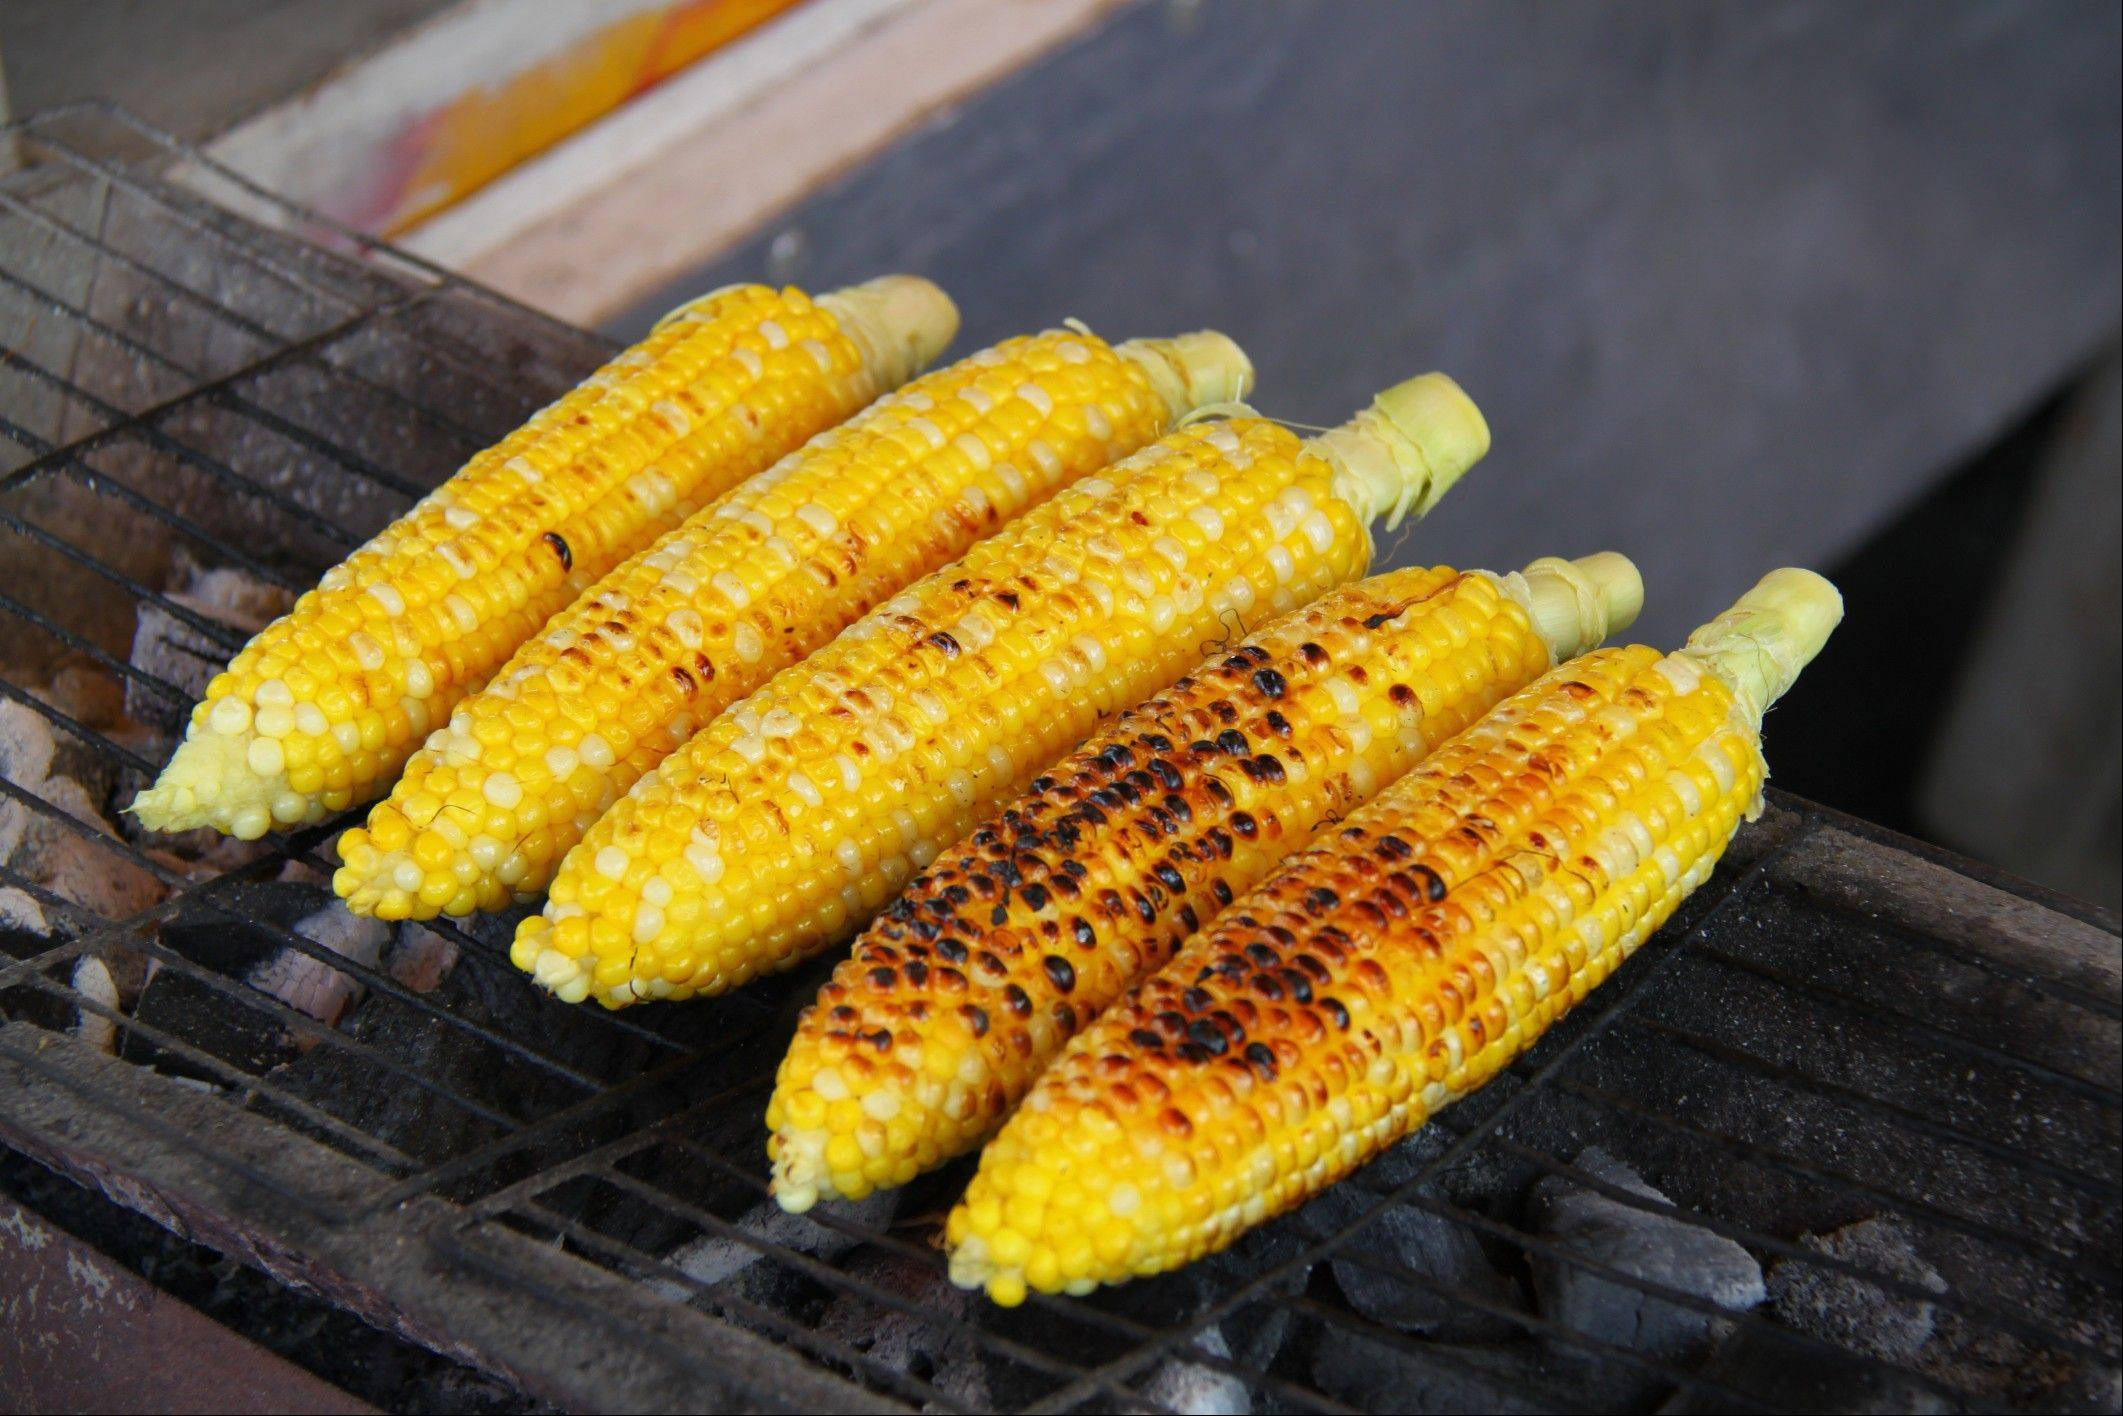 Don's take on making the most of corn on the cob